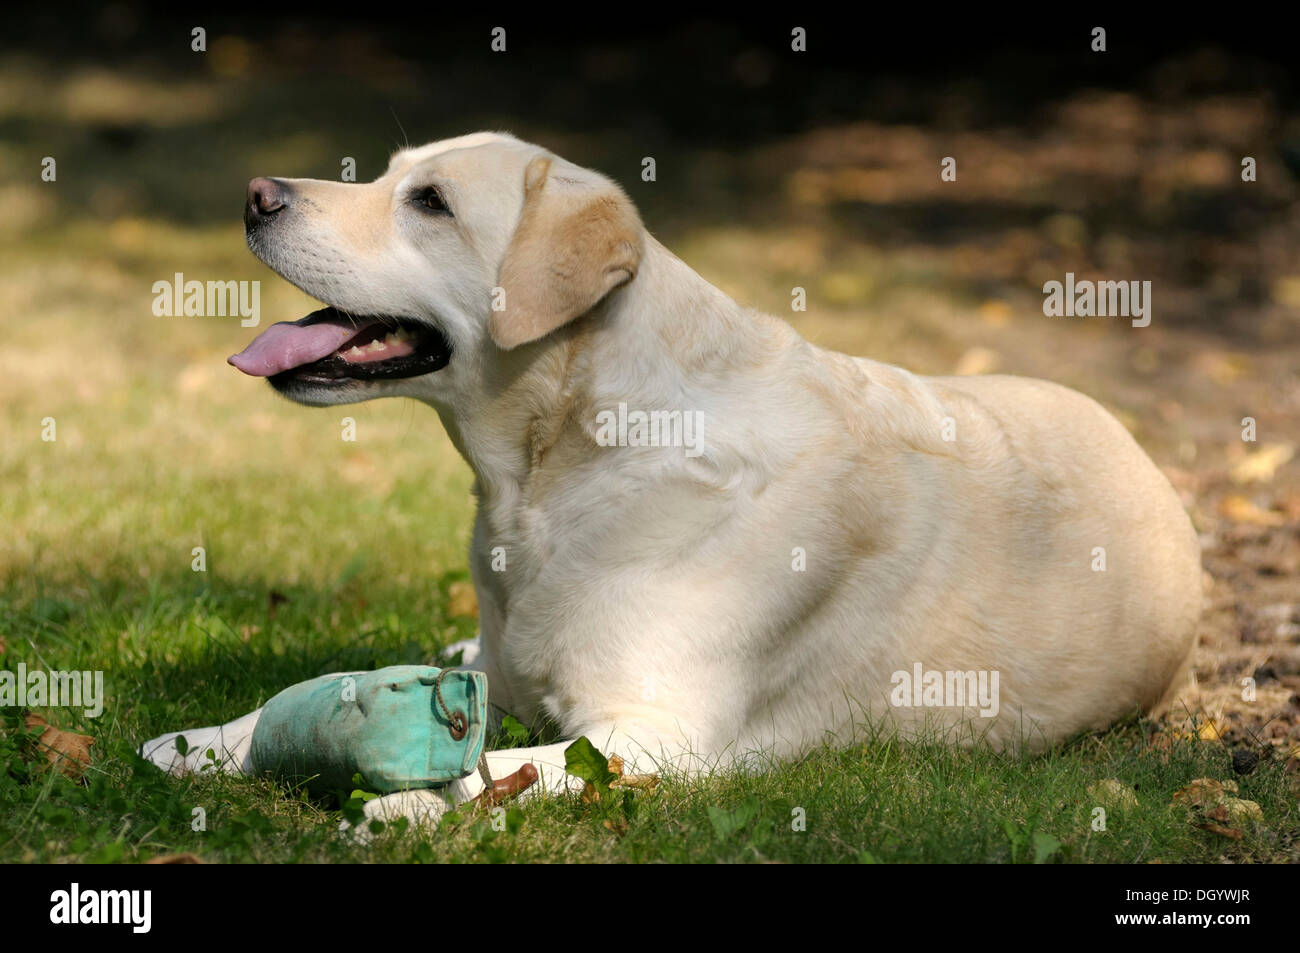 Blonde Labrador-Retriever lying on the ground with a dummy on its paws Stock Photo